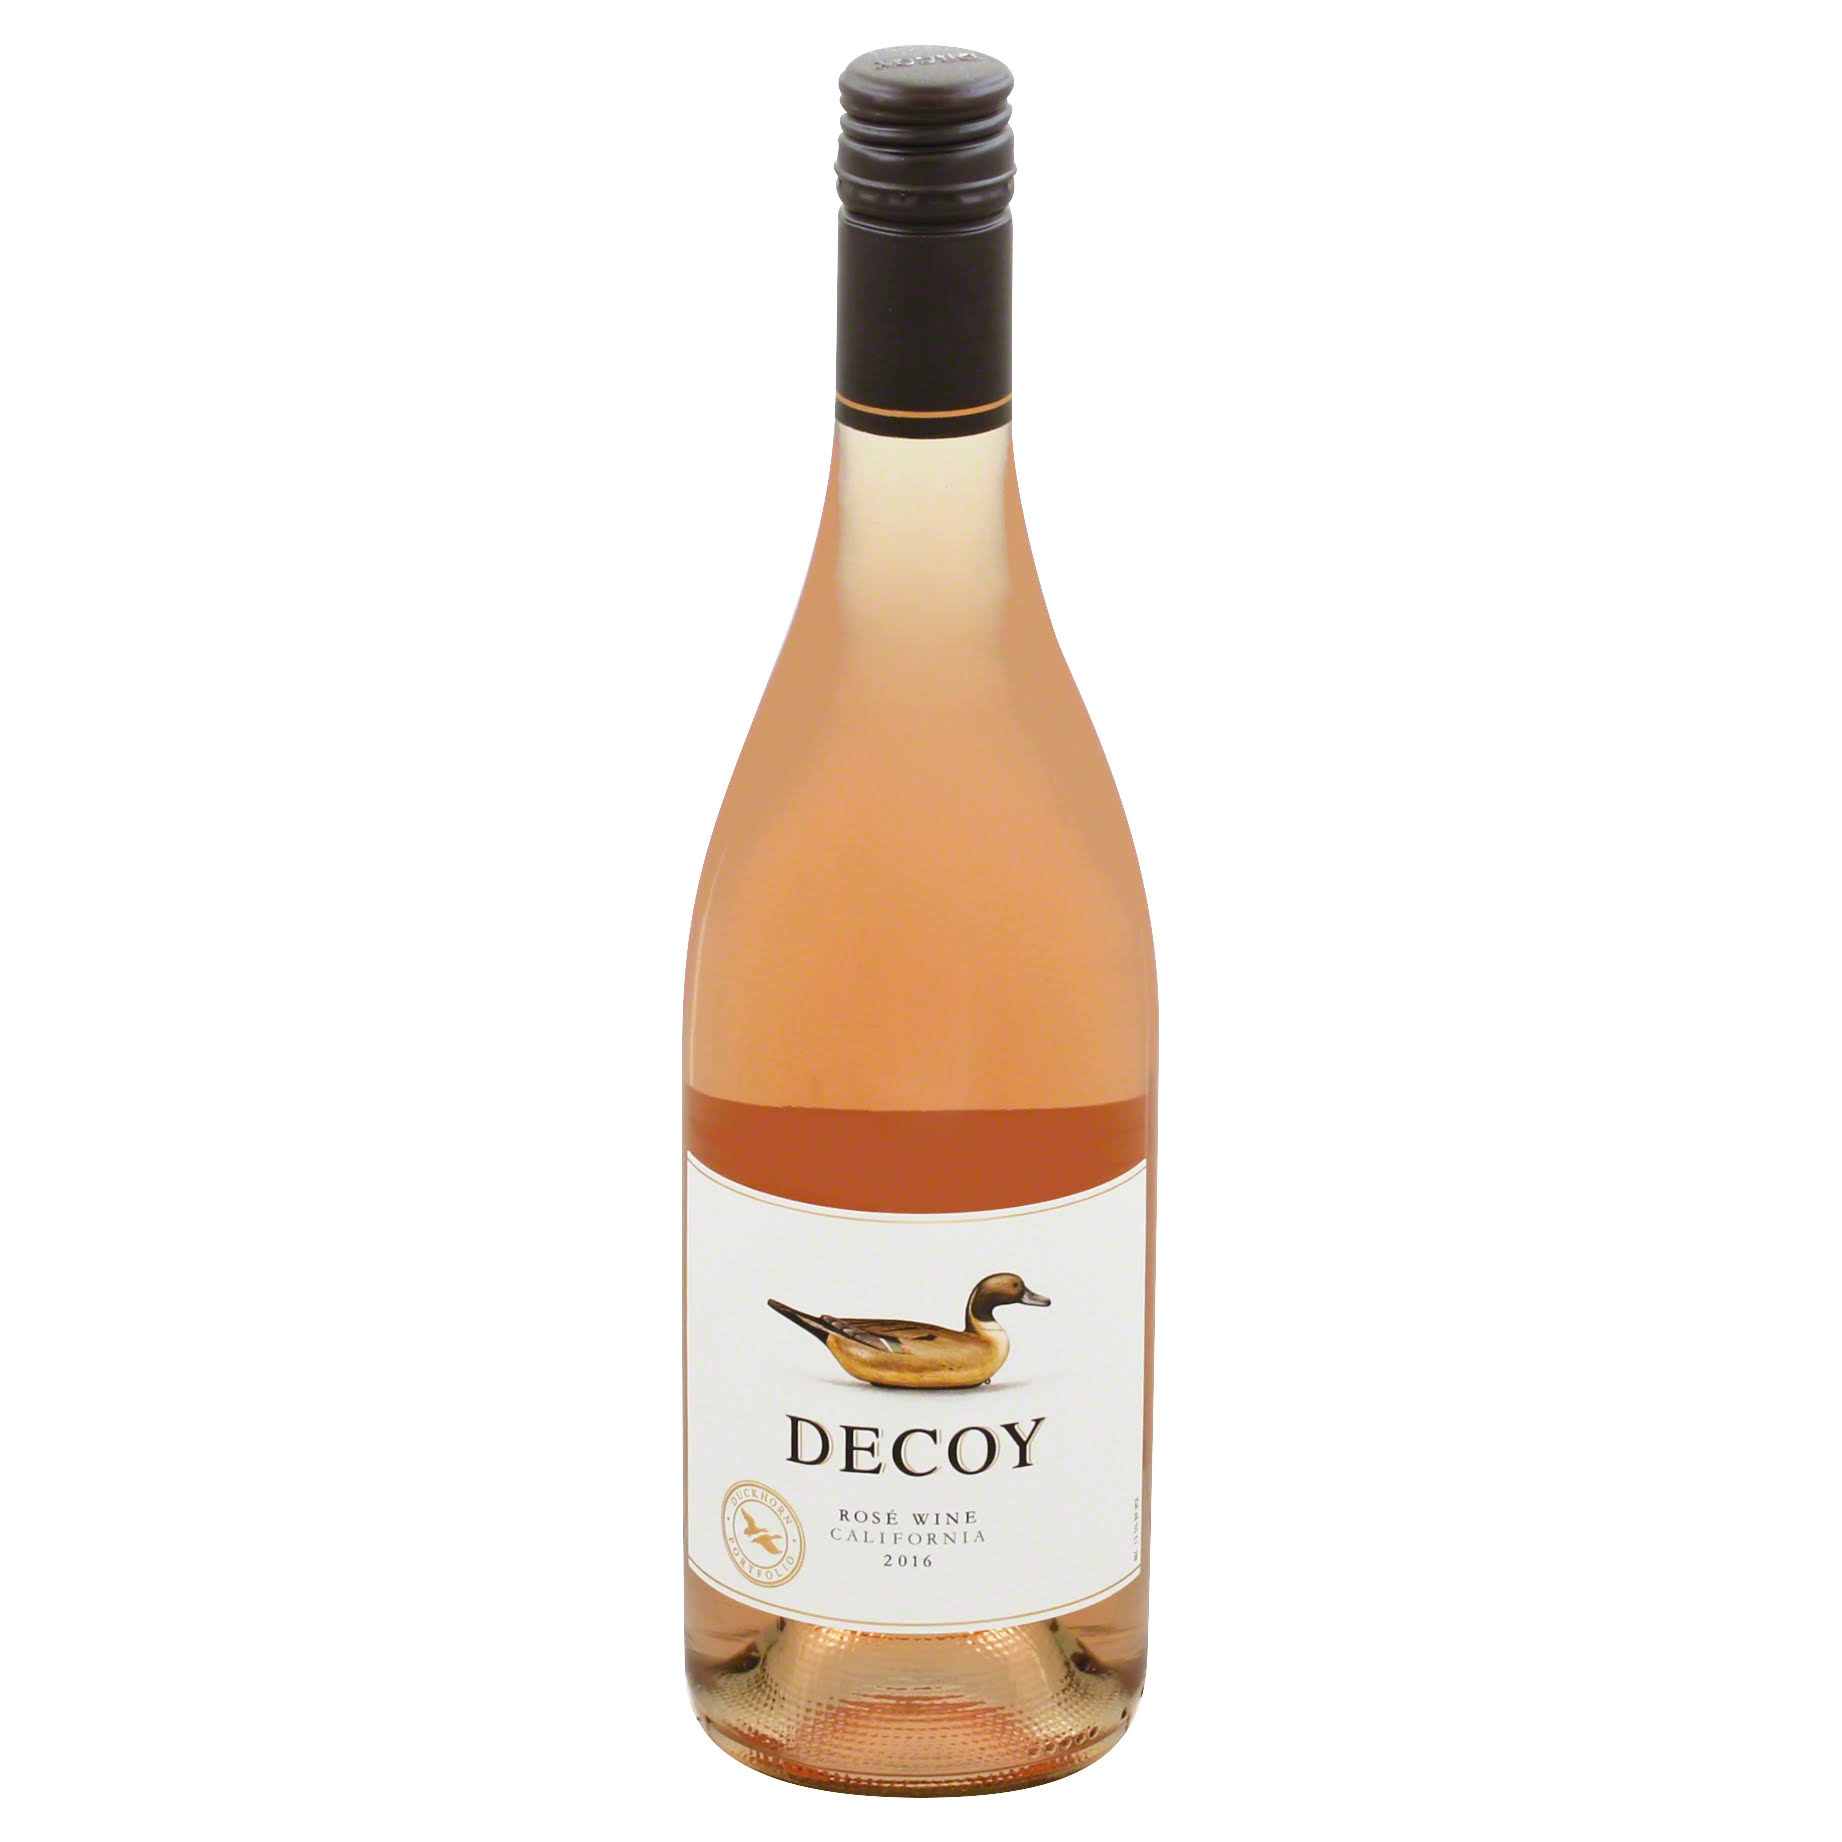 Decoy Rose Wine, California, 2016 - 750 ml